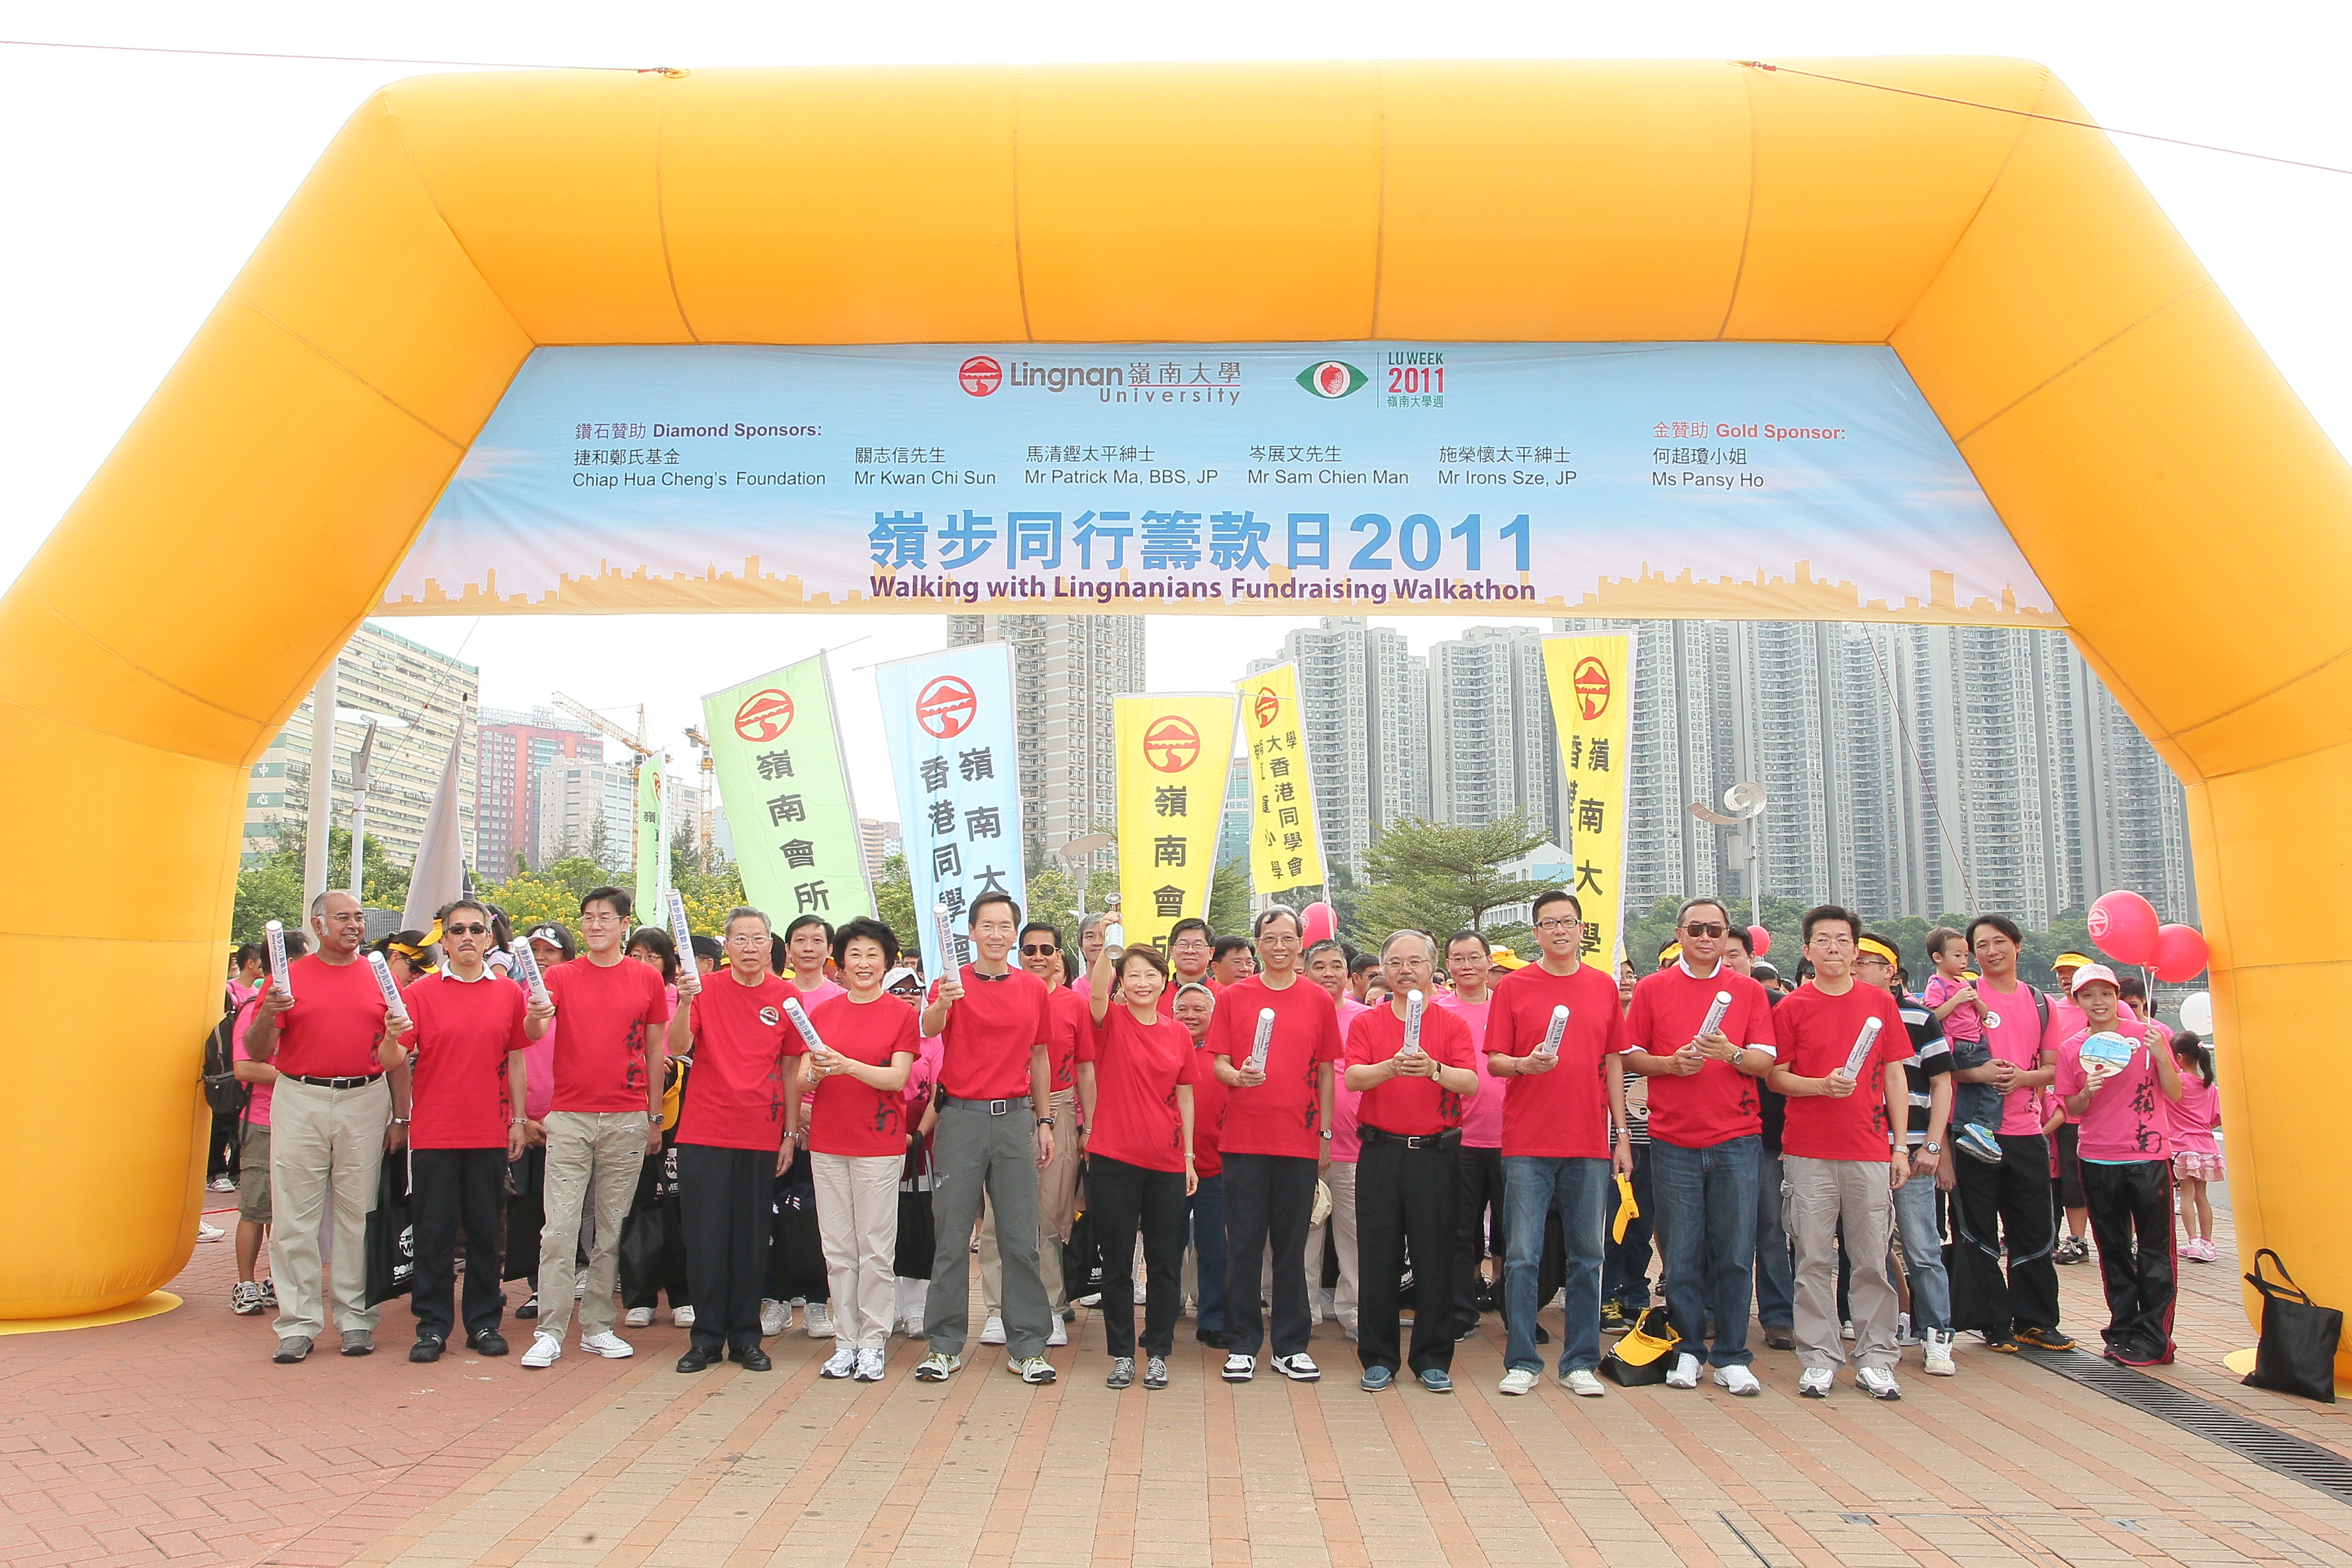 2011.JPG Walkathon